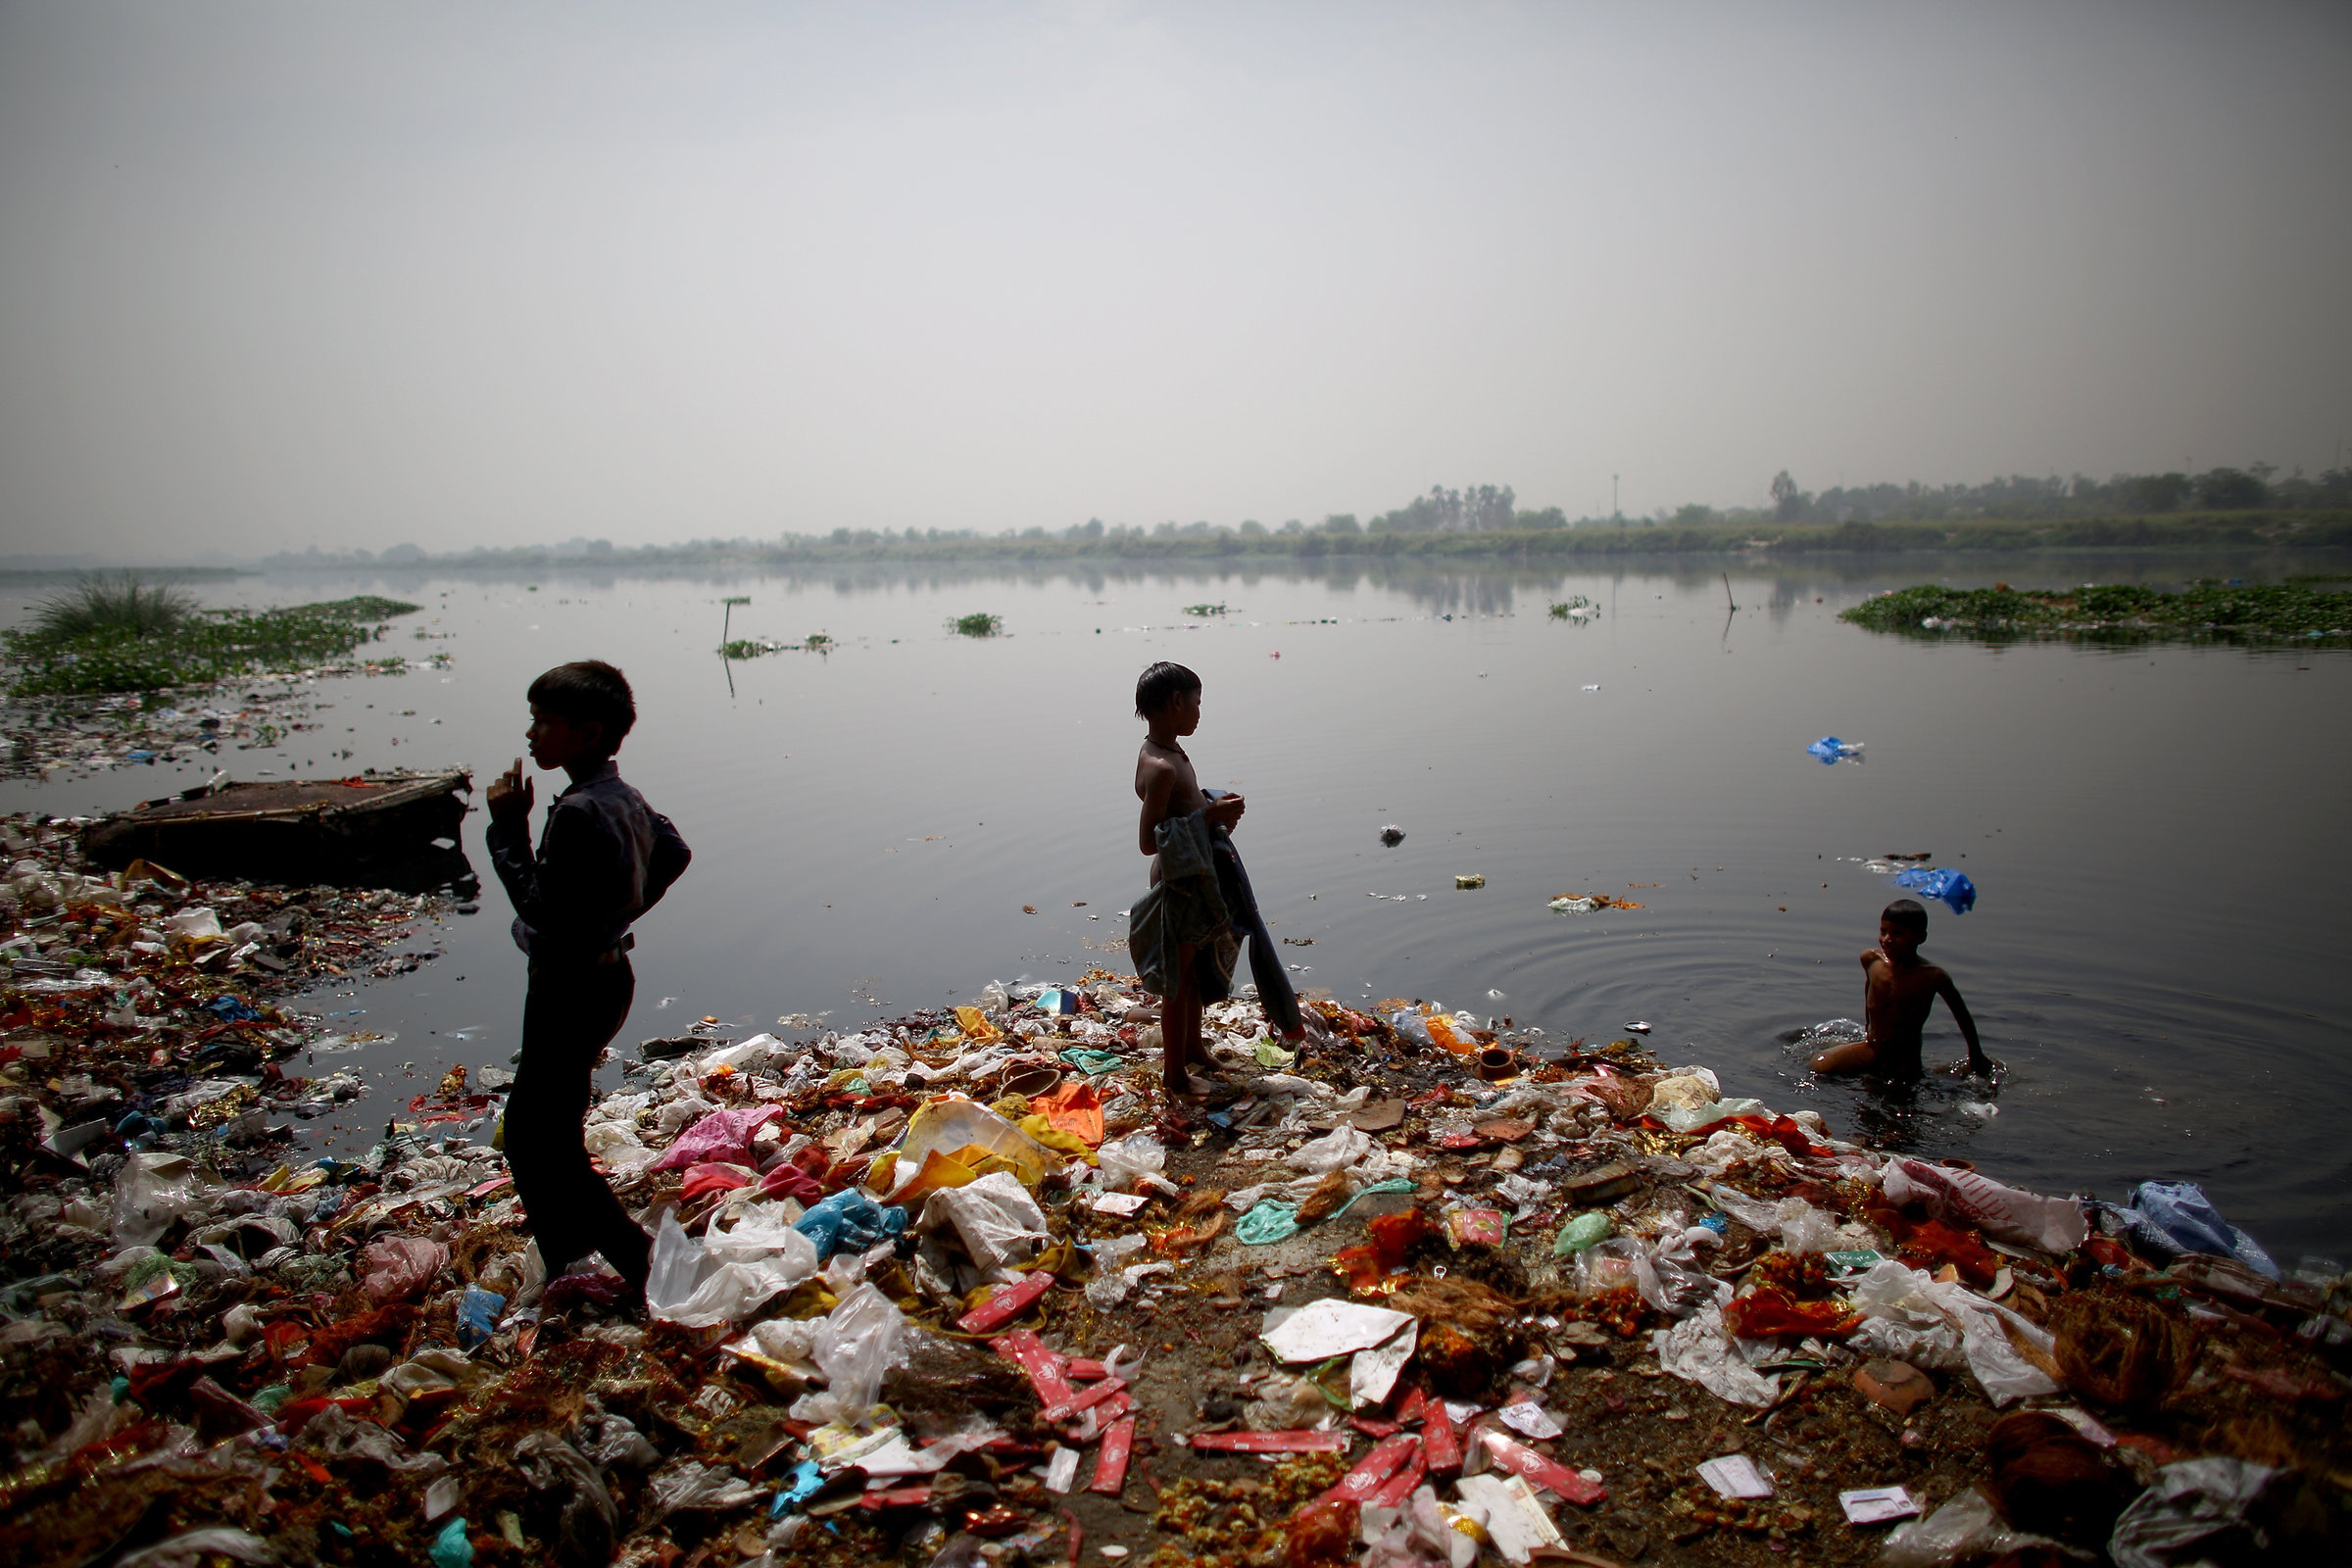 Children who live along the banks of the Yamuna River in ramshackle huts hunt for coins and anything valuable they can collect